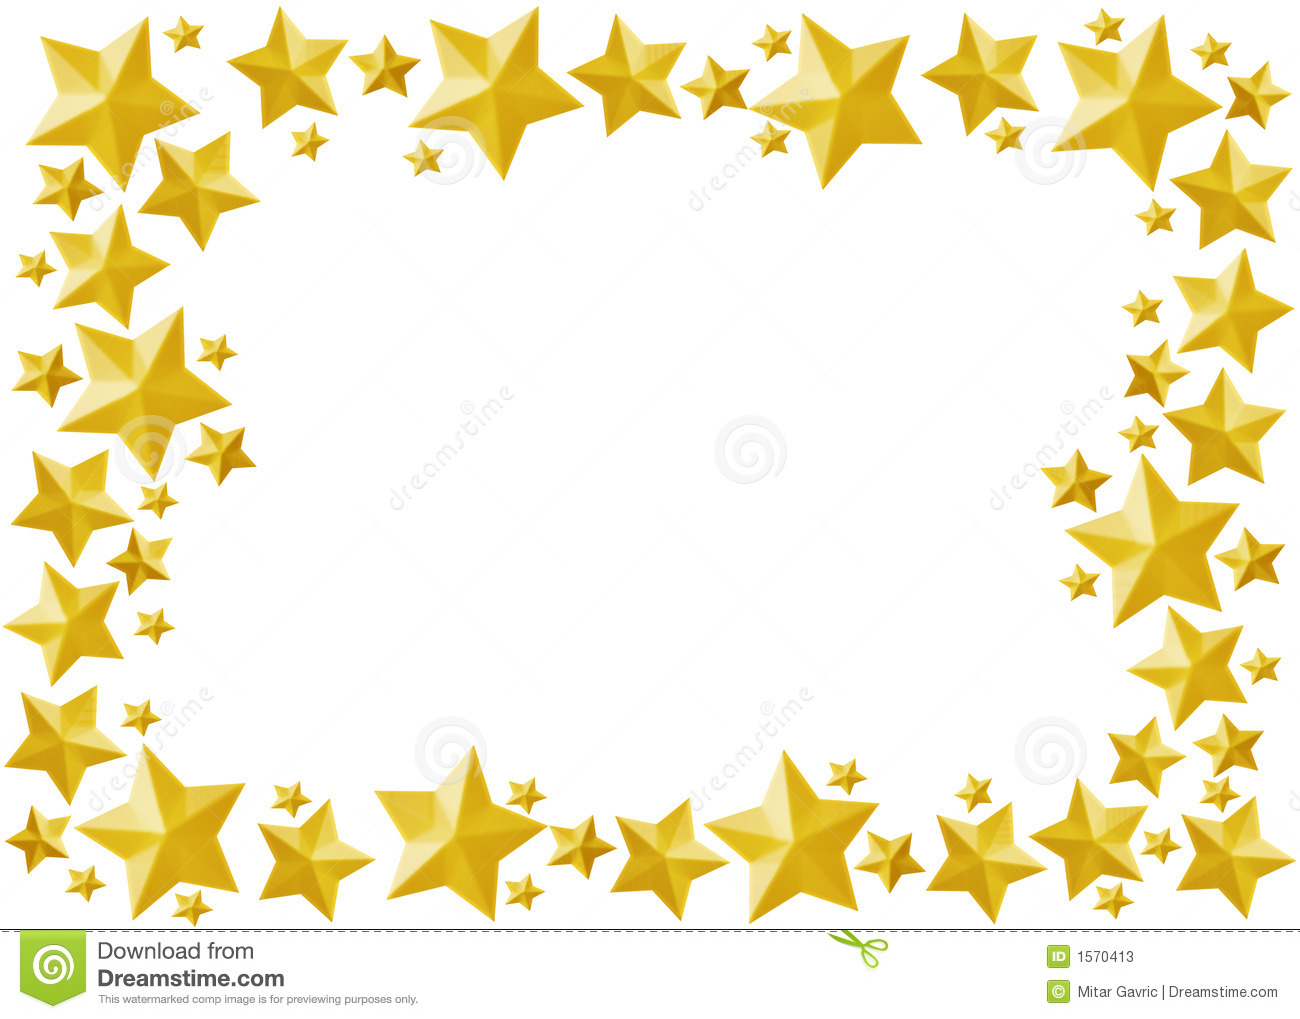 Decoration frame with star all, gold star isolated.